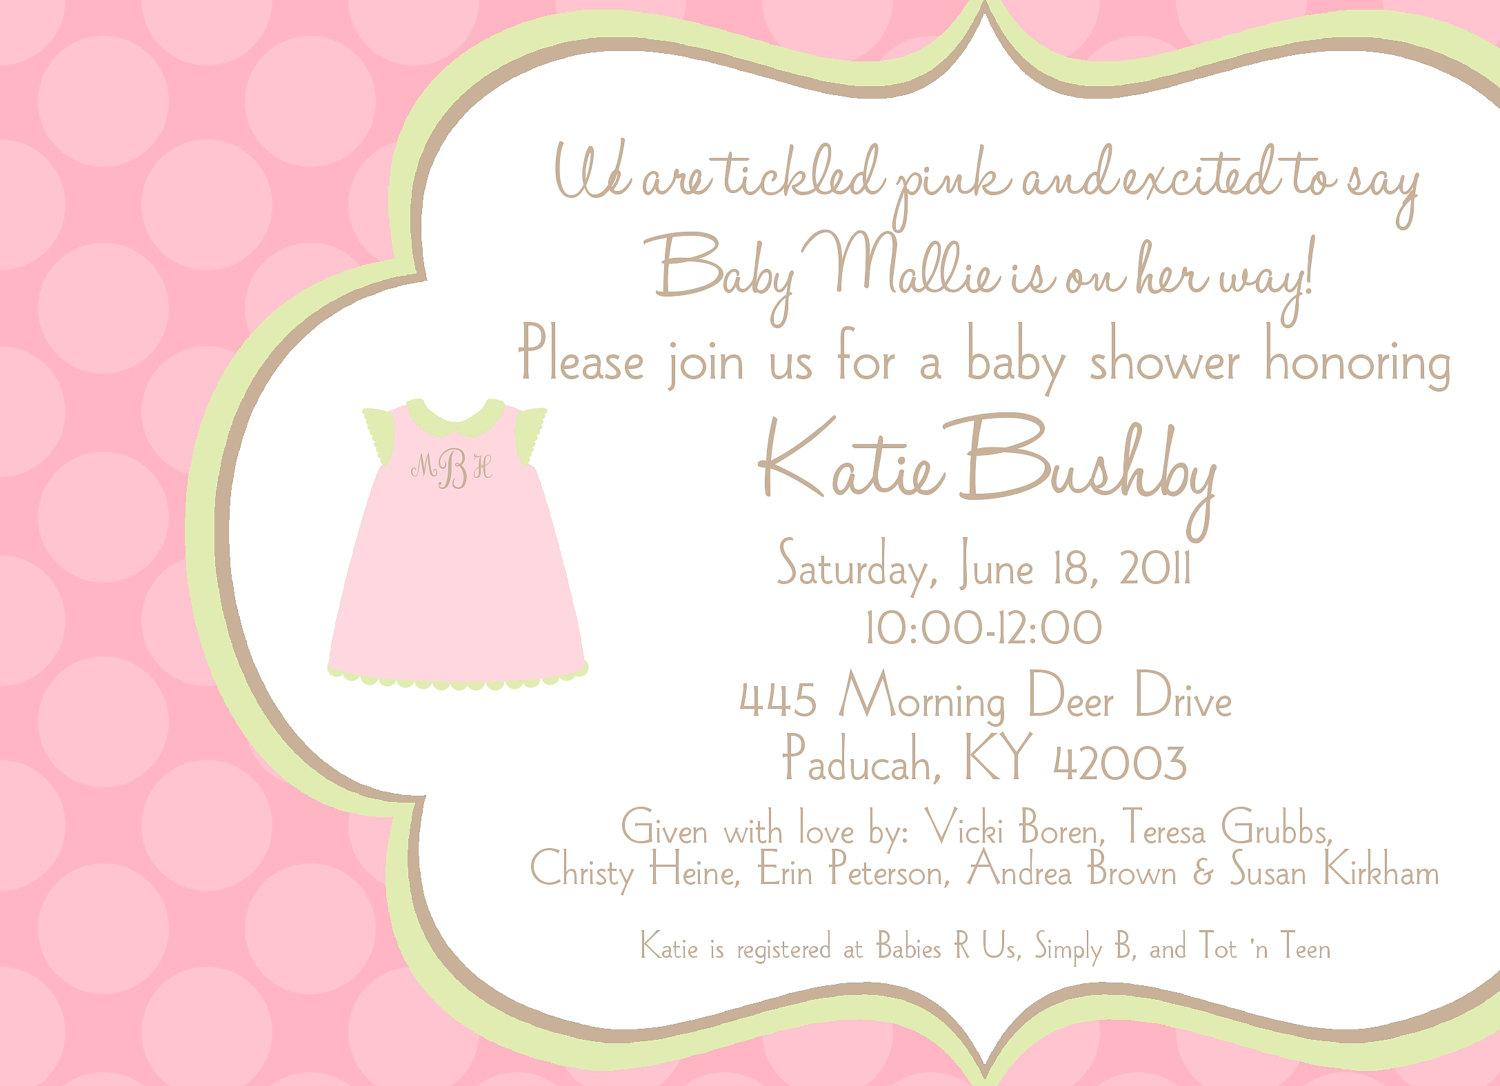 Baby Shower Invitation Wording You Can Look Tea Party Baby Shower Invitations You Can Look Baby Girl Shower Invitation Wording Baby Shower Invitation Wording Guideline To Help You Write Yours